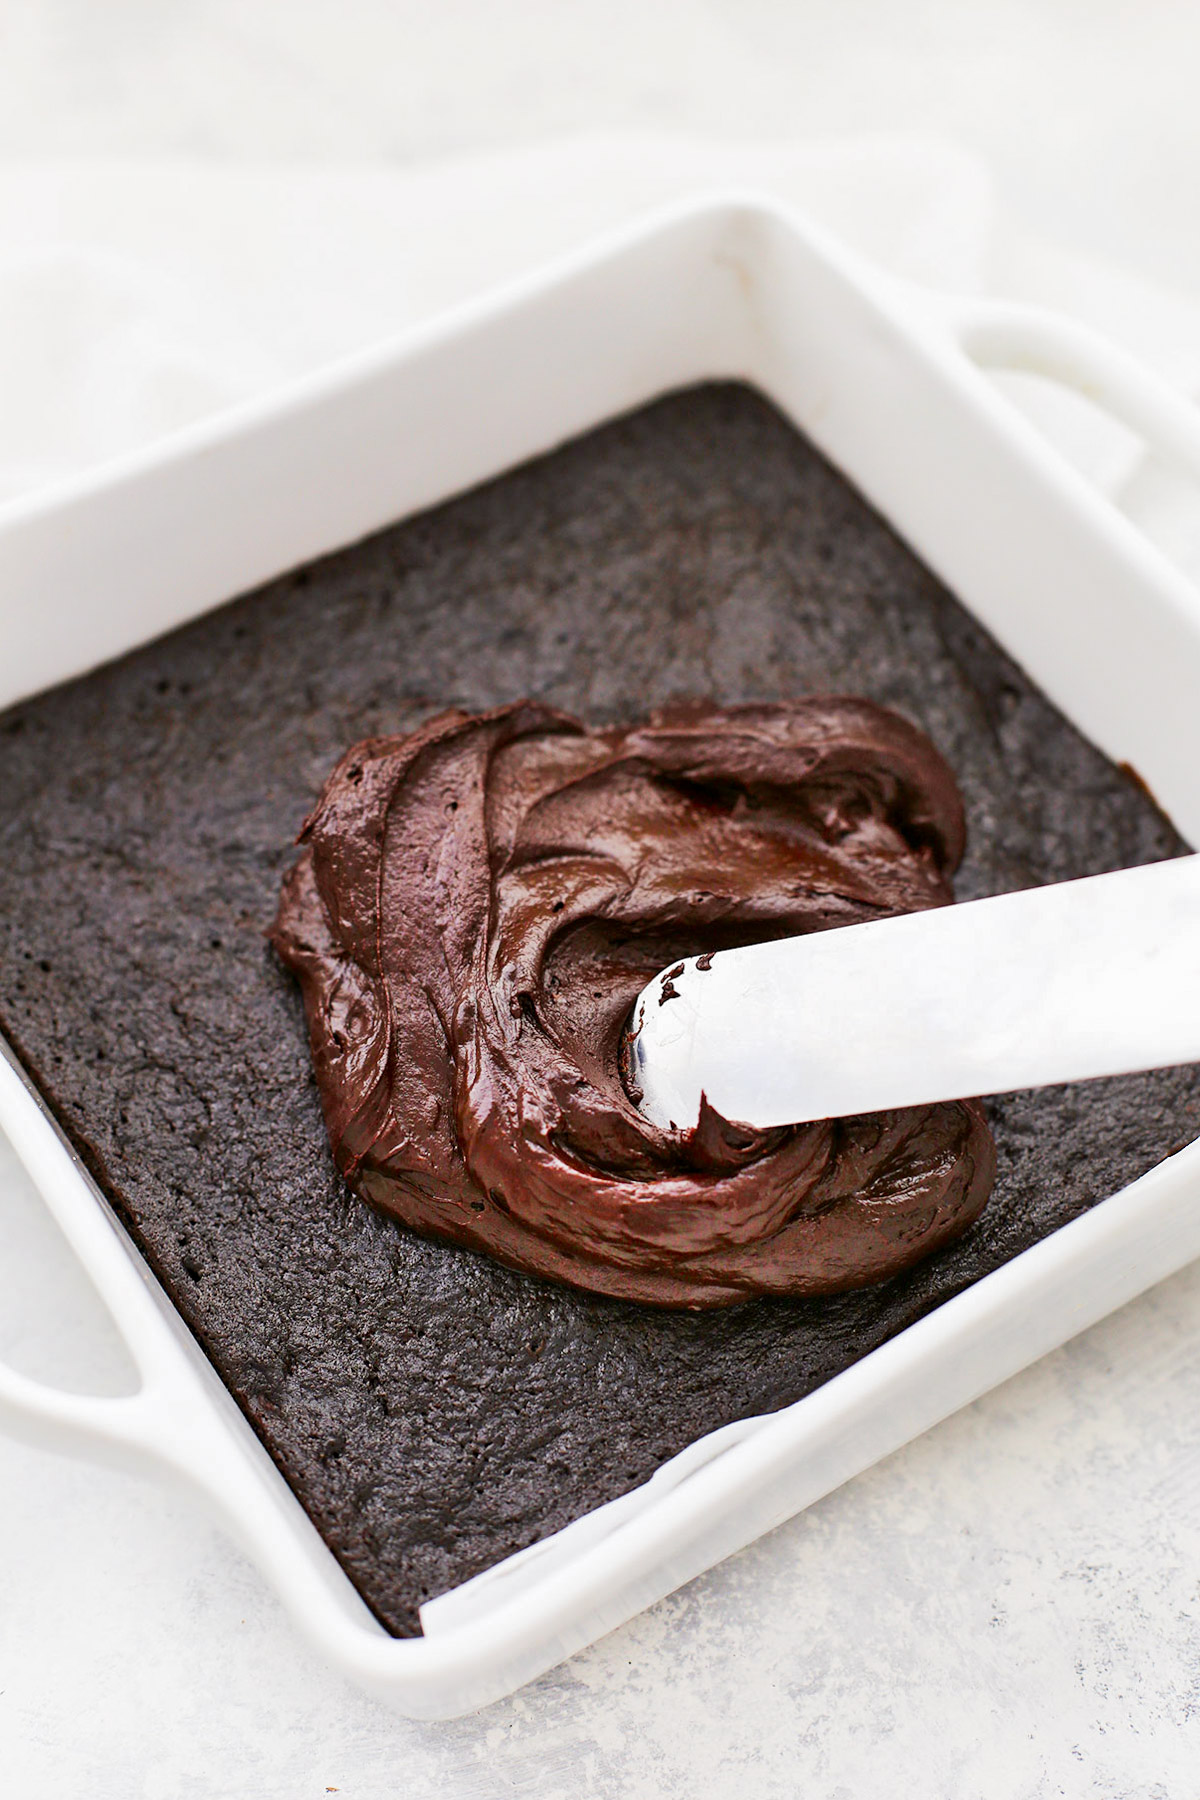 Front view of spatula spreading healthy chocolate frosting onto gluten free chocolate zucchini cake